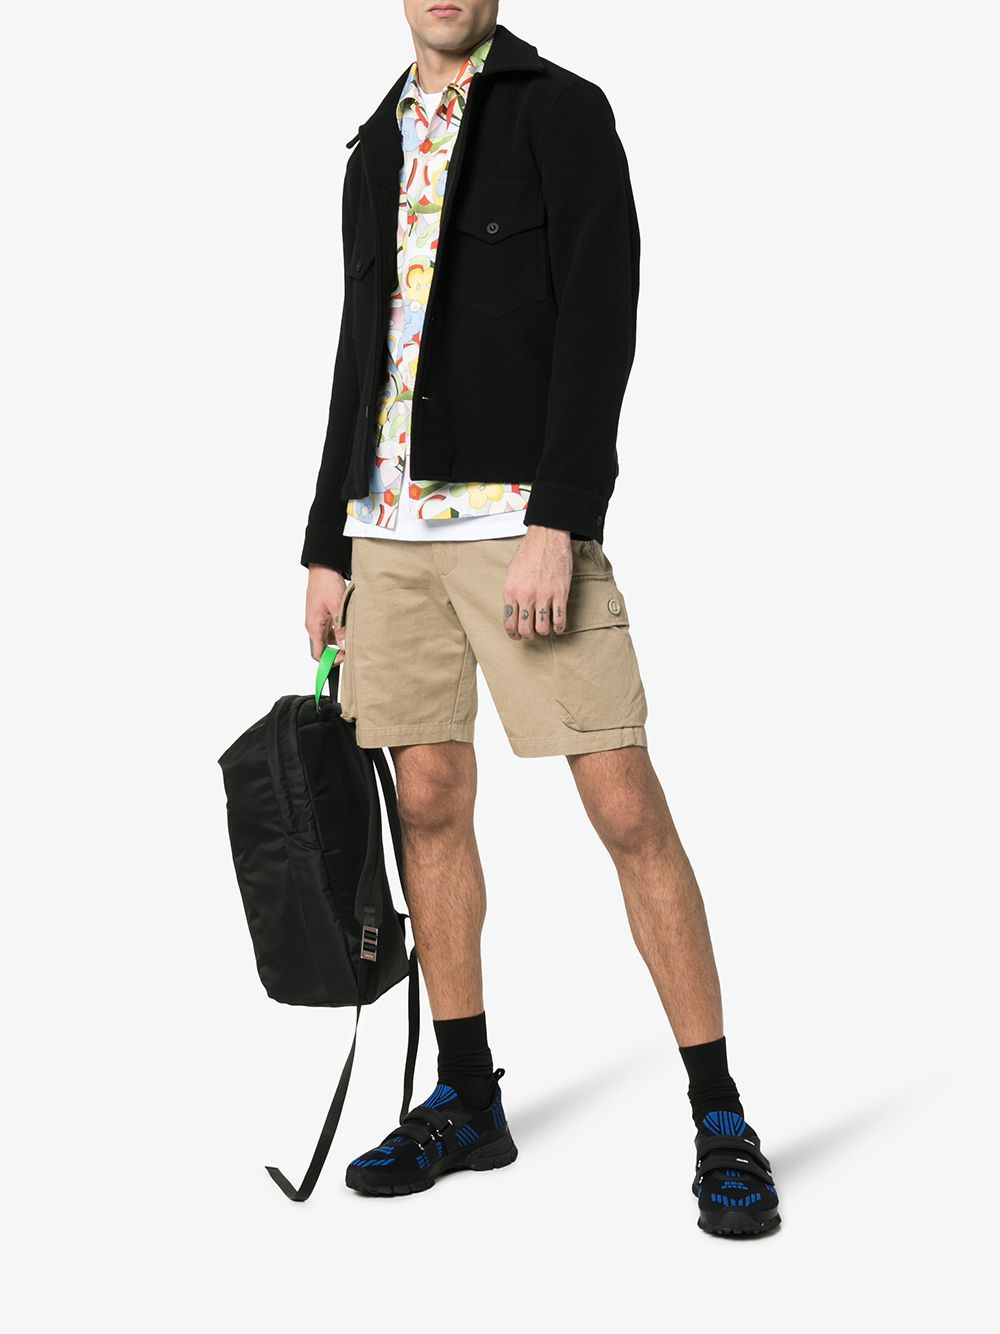 Prada Crossection Knit Black And Blue